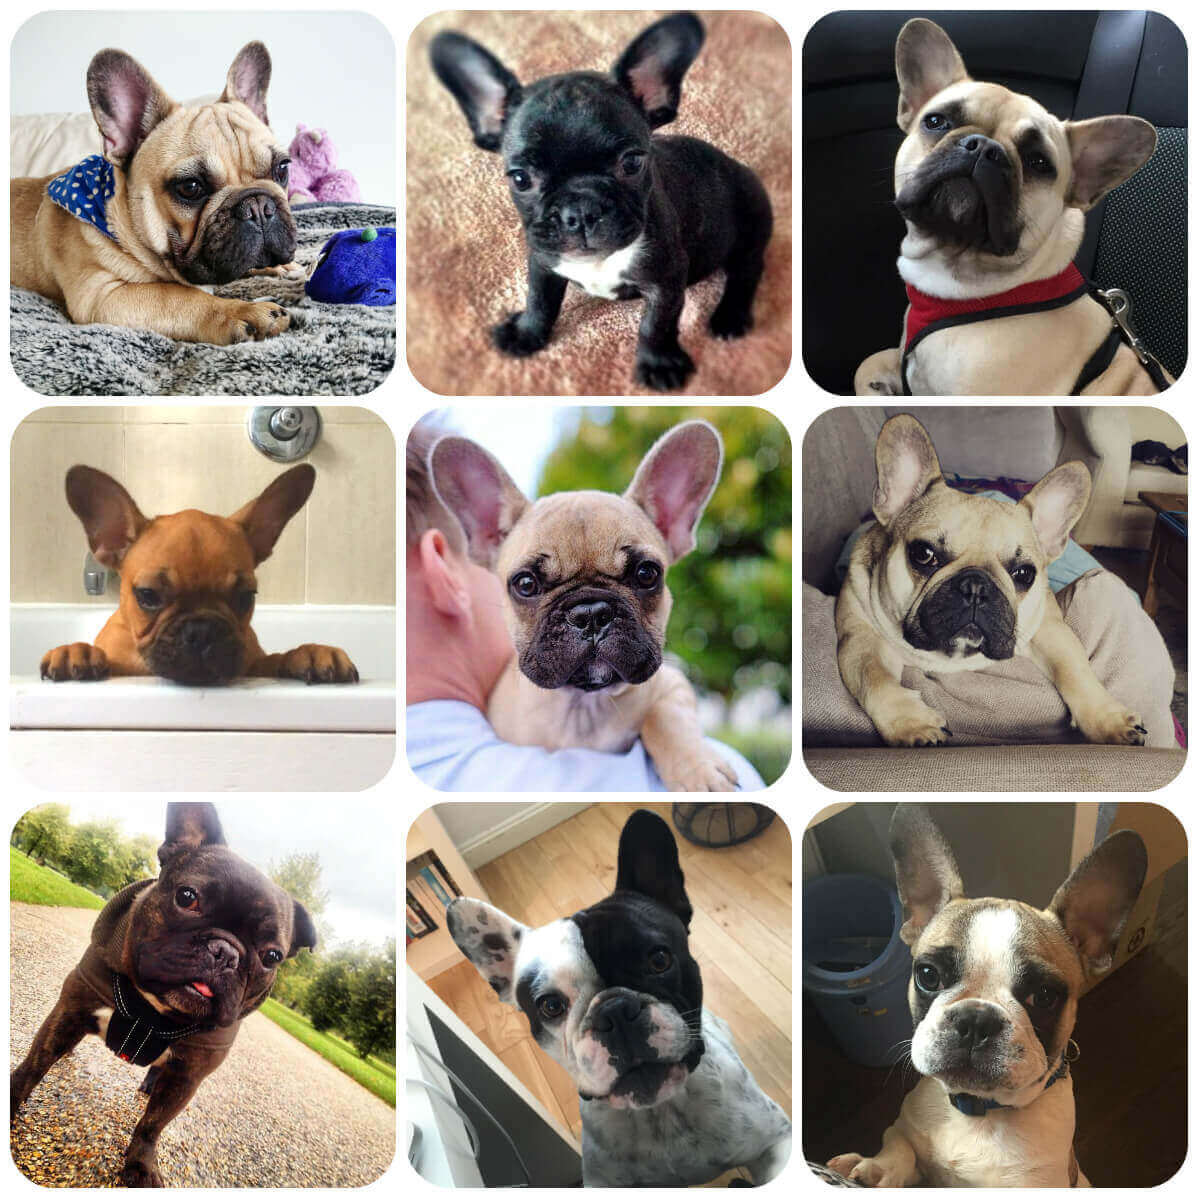 french bulldog collage, part of BorrowMyDoggy's guide to dog breeds.